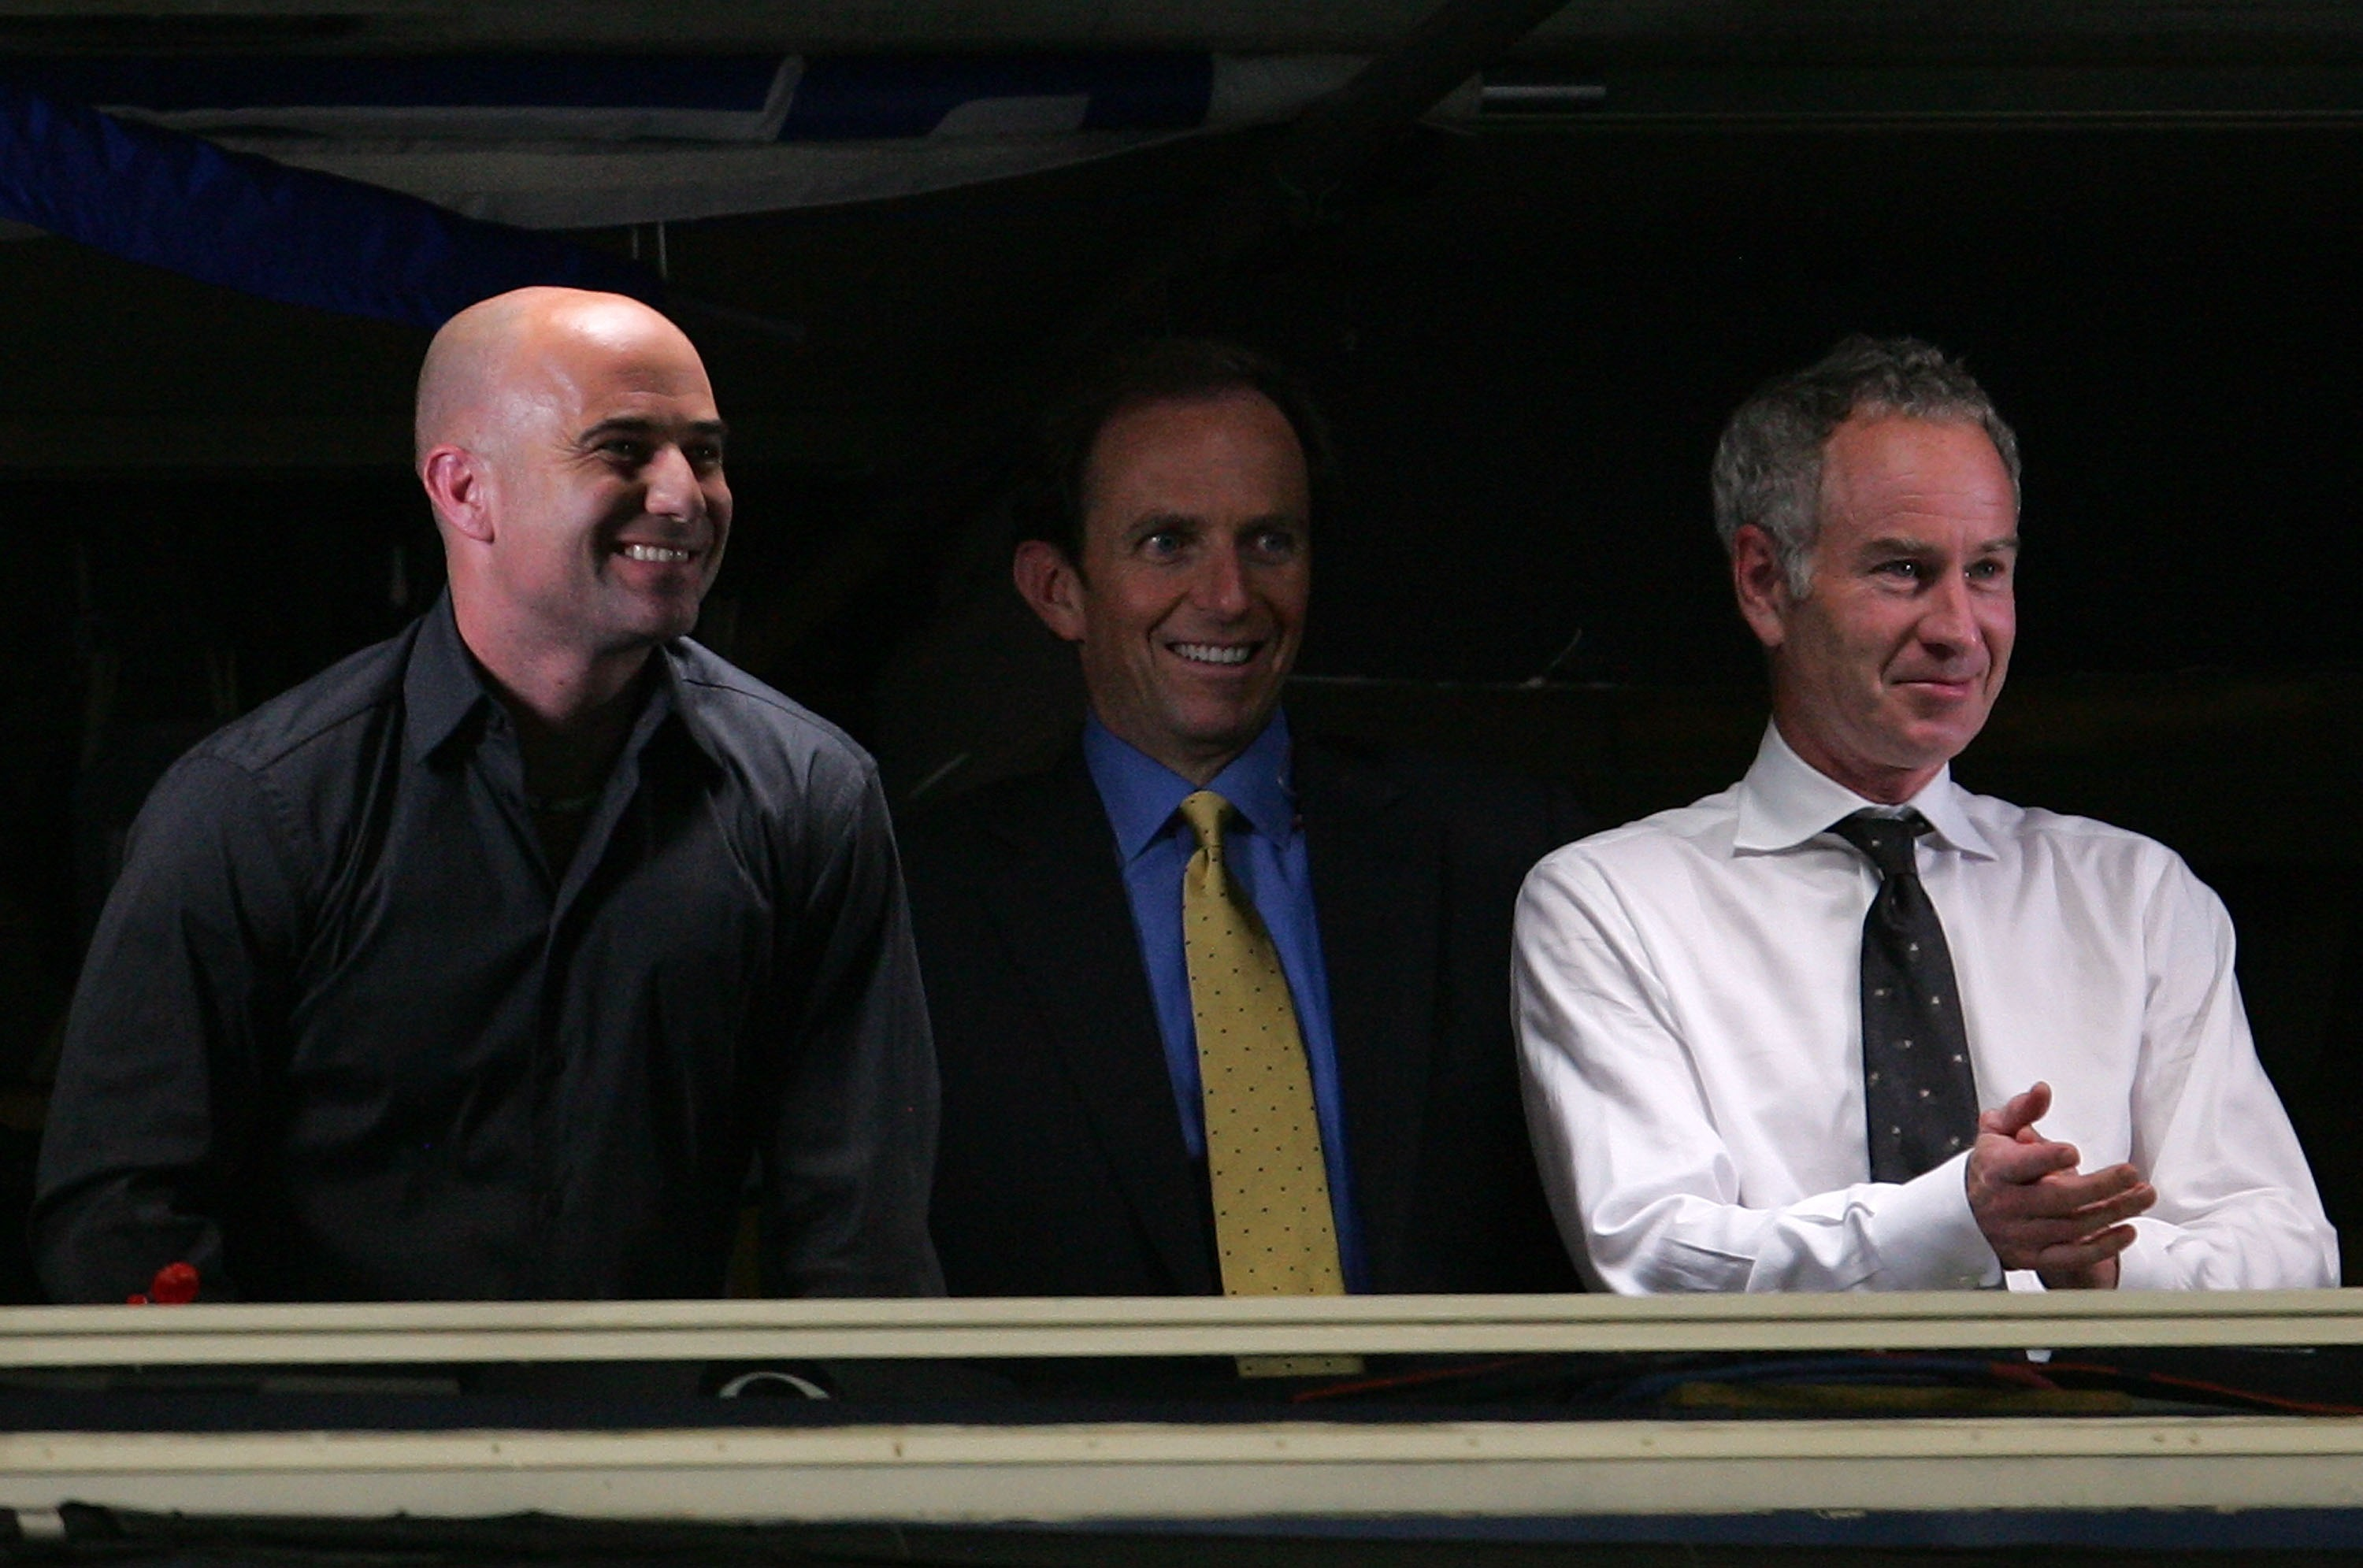 NEW YORK - SEPTEMBER 05:  (L-R) Andre Agassi, Ted Robinson and John McEnroe broadcast from the USA network booth as Andy Roddick plays against Roger Federer during day ten of the 2007 U.S. Open at the Billie Jean King National Tennis Center on September 5